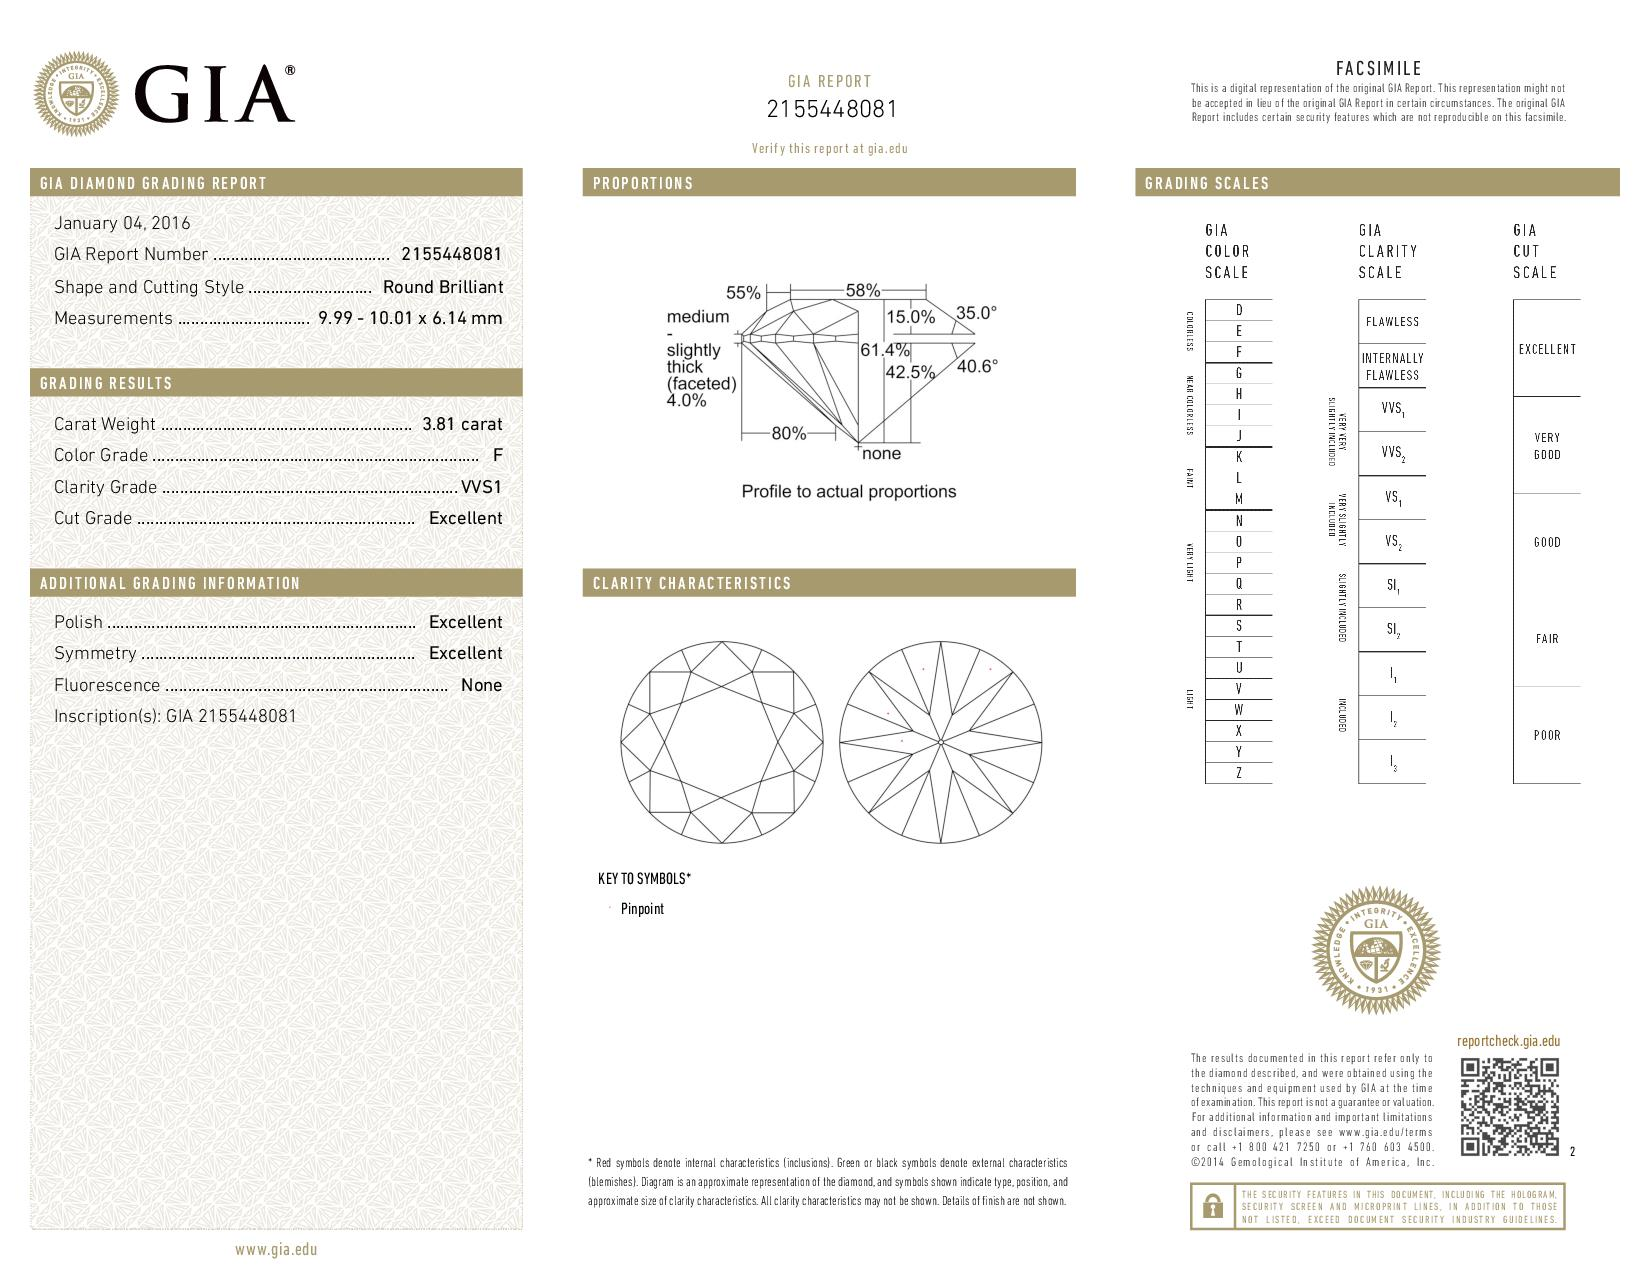 This is a 3.81 carat round shape, F color, VVS1 clarity natural diamond accompanied by a GIA grading report.